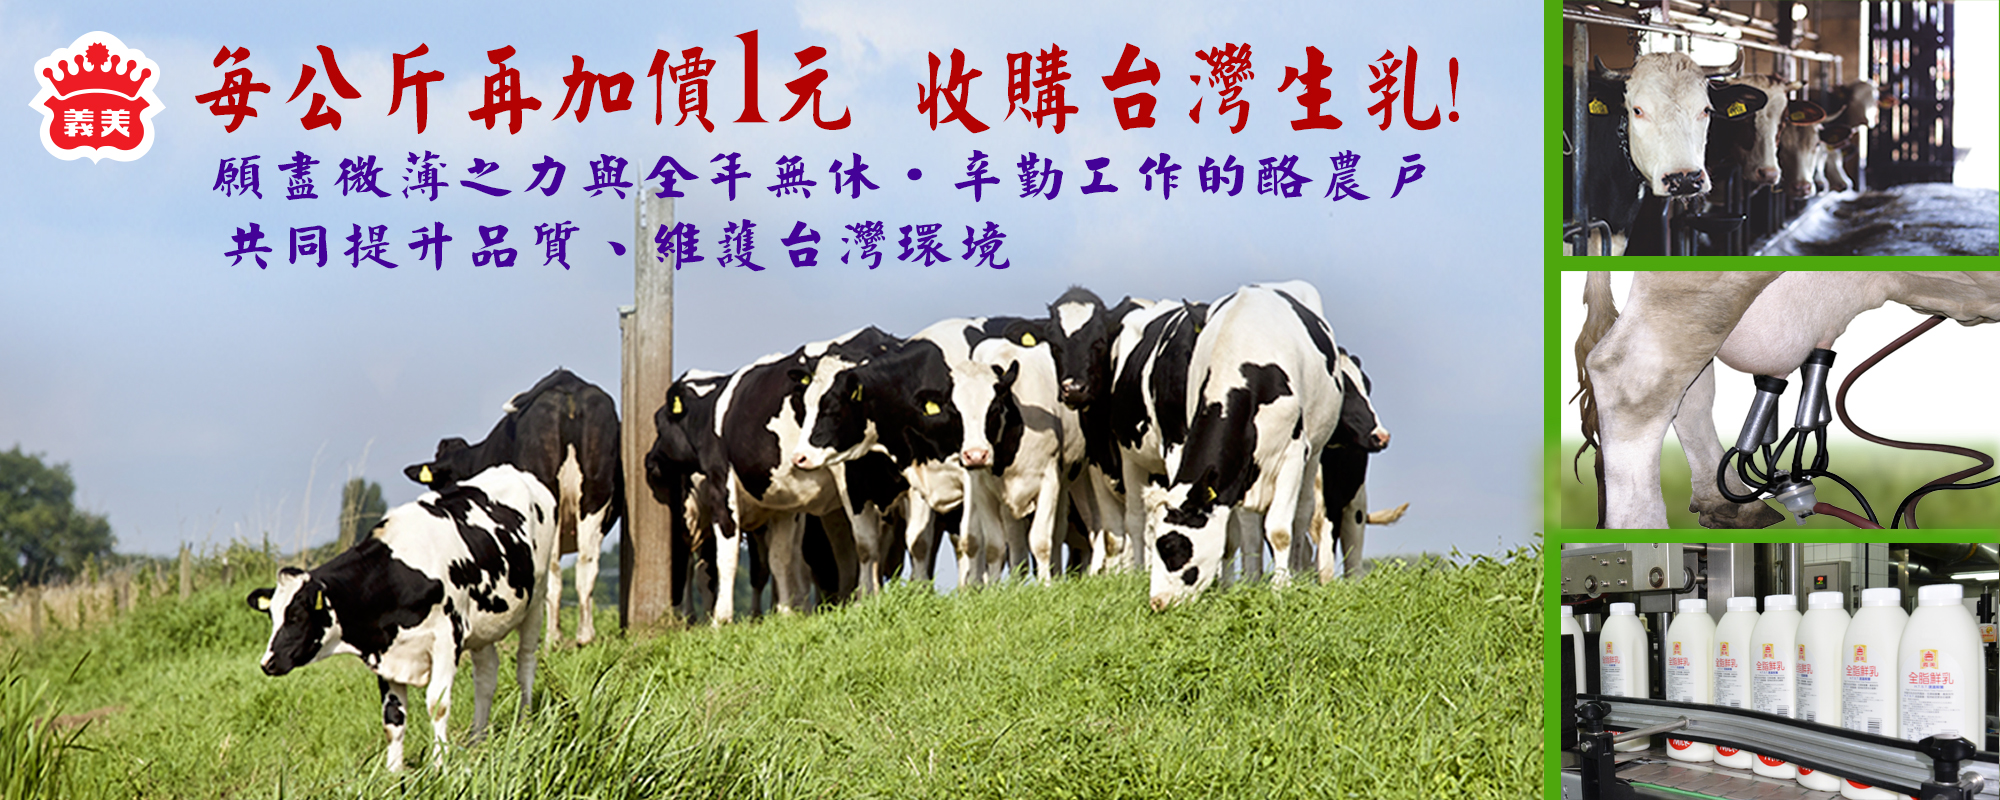 I-Mei to pay dairy farmers more for their products.